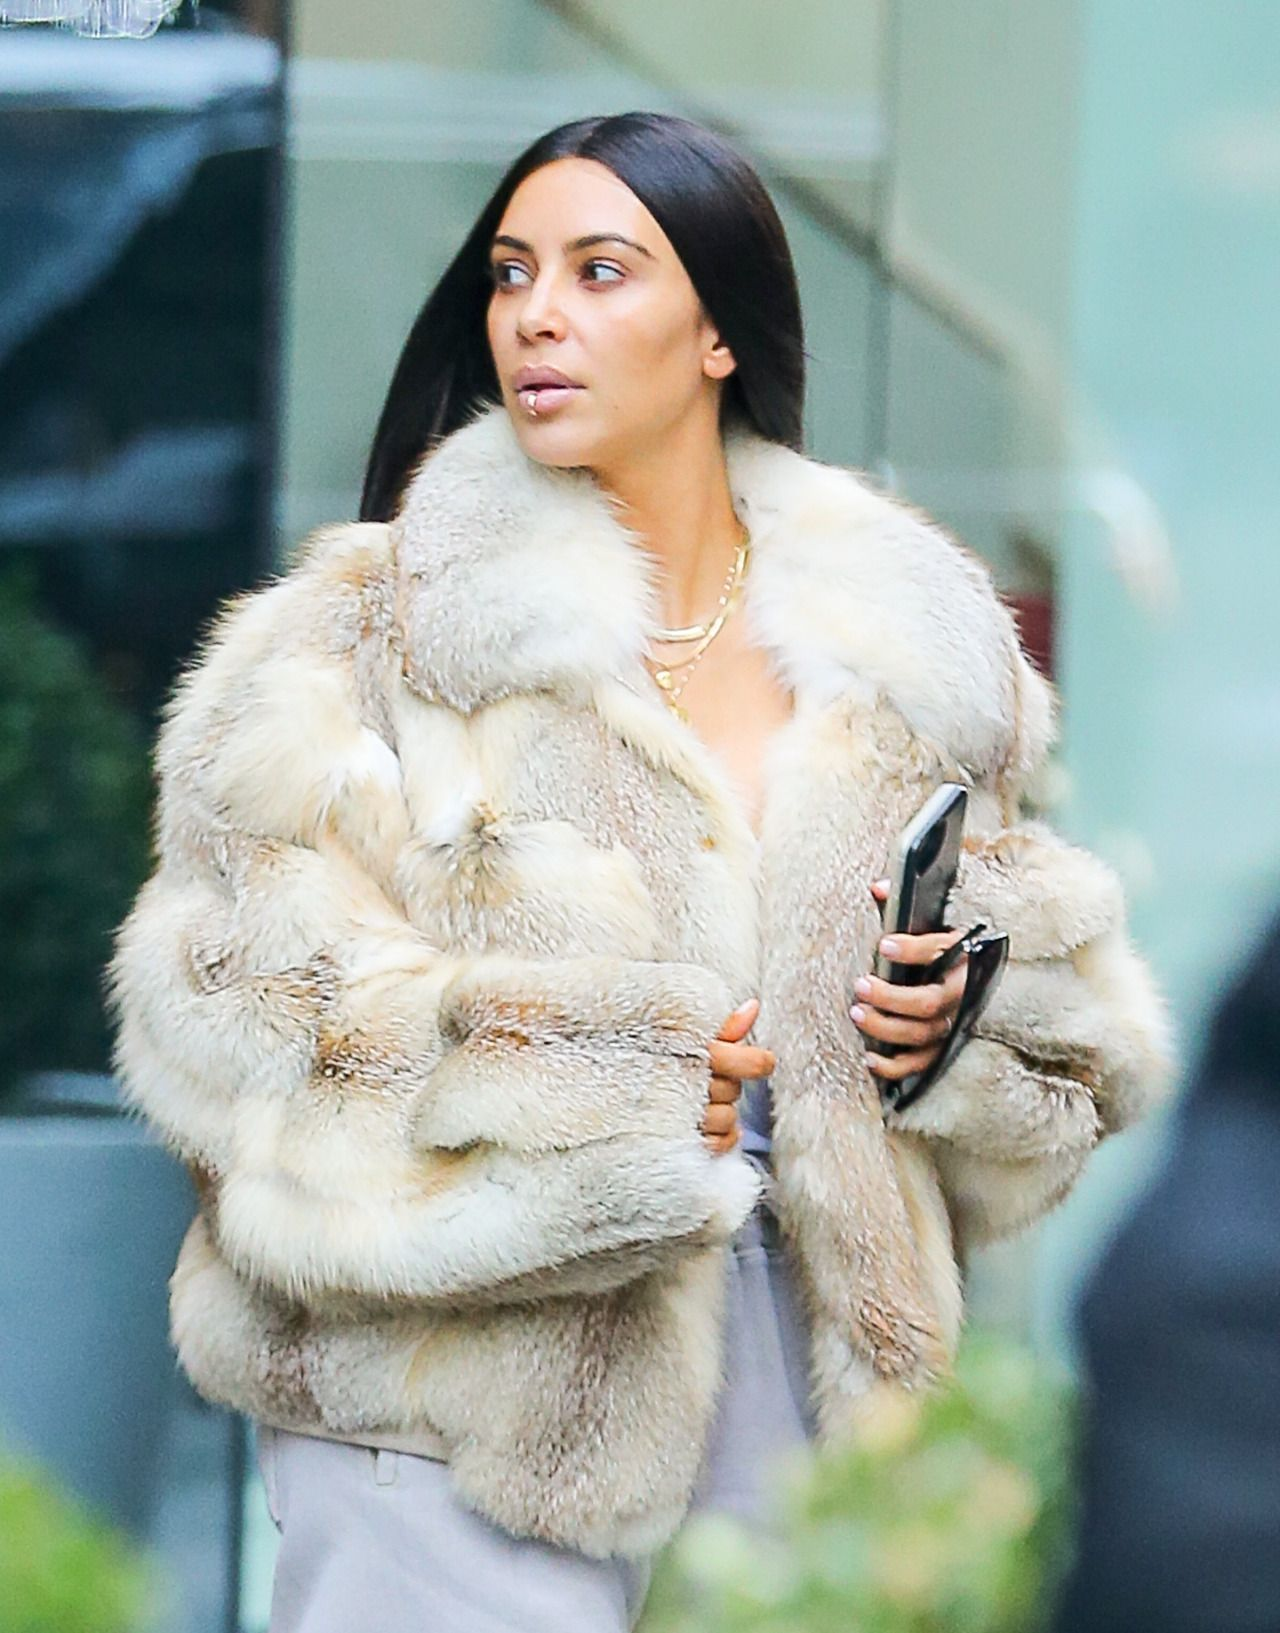 Kim out in NYC - January 16, 2017